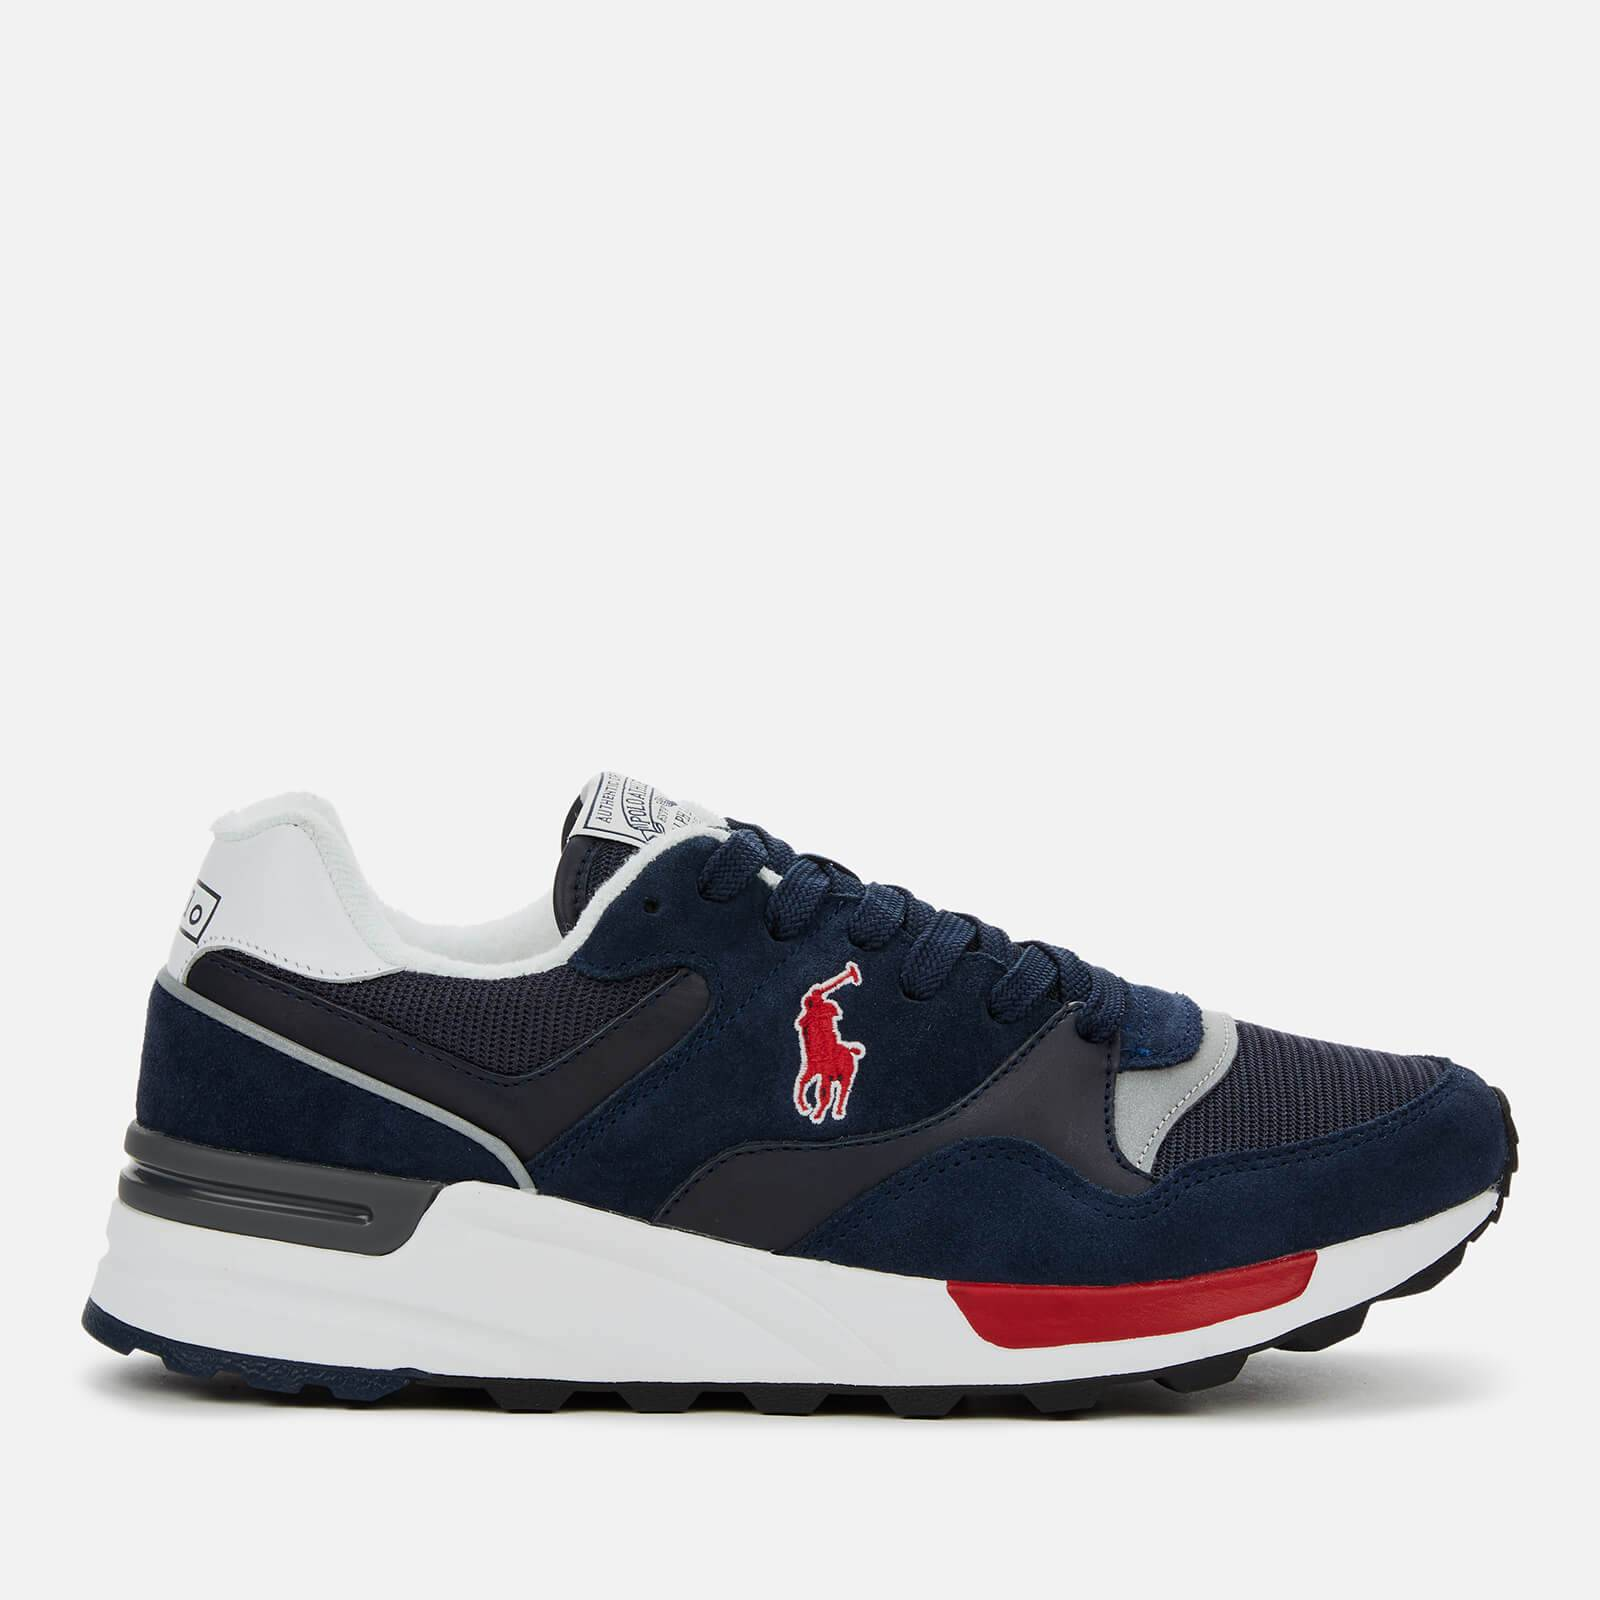 Ralph Lauren Polo Ralph Lauren Men's Trackstar Pony Suede/Mesh Running Style Trainers - Newport Navy - UK 7